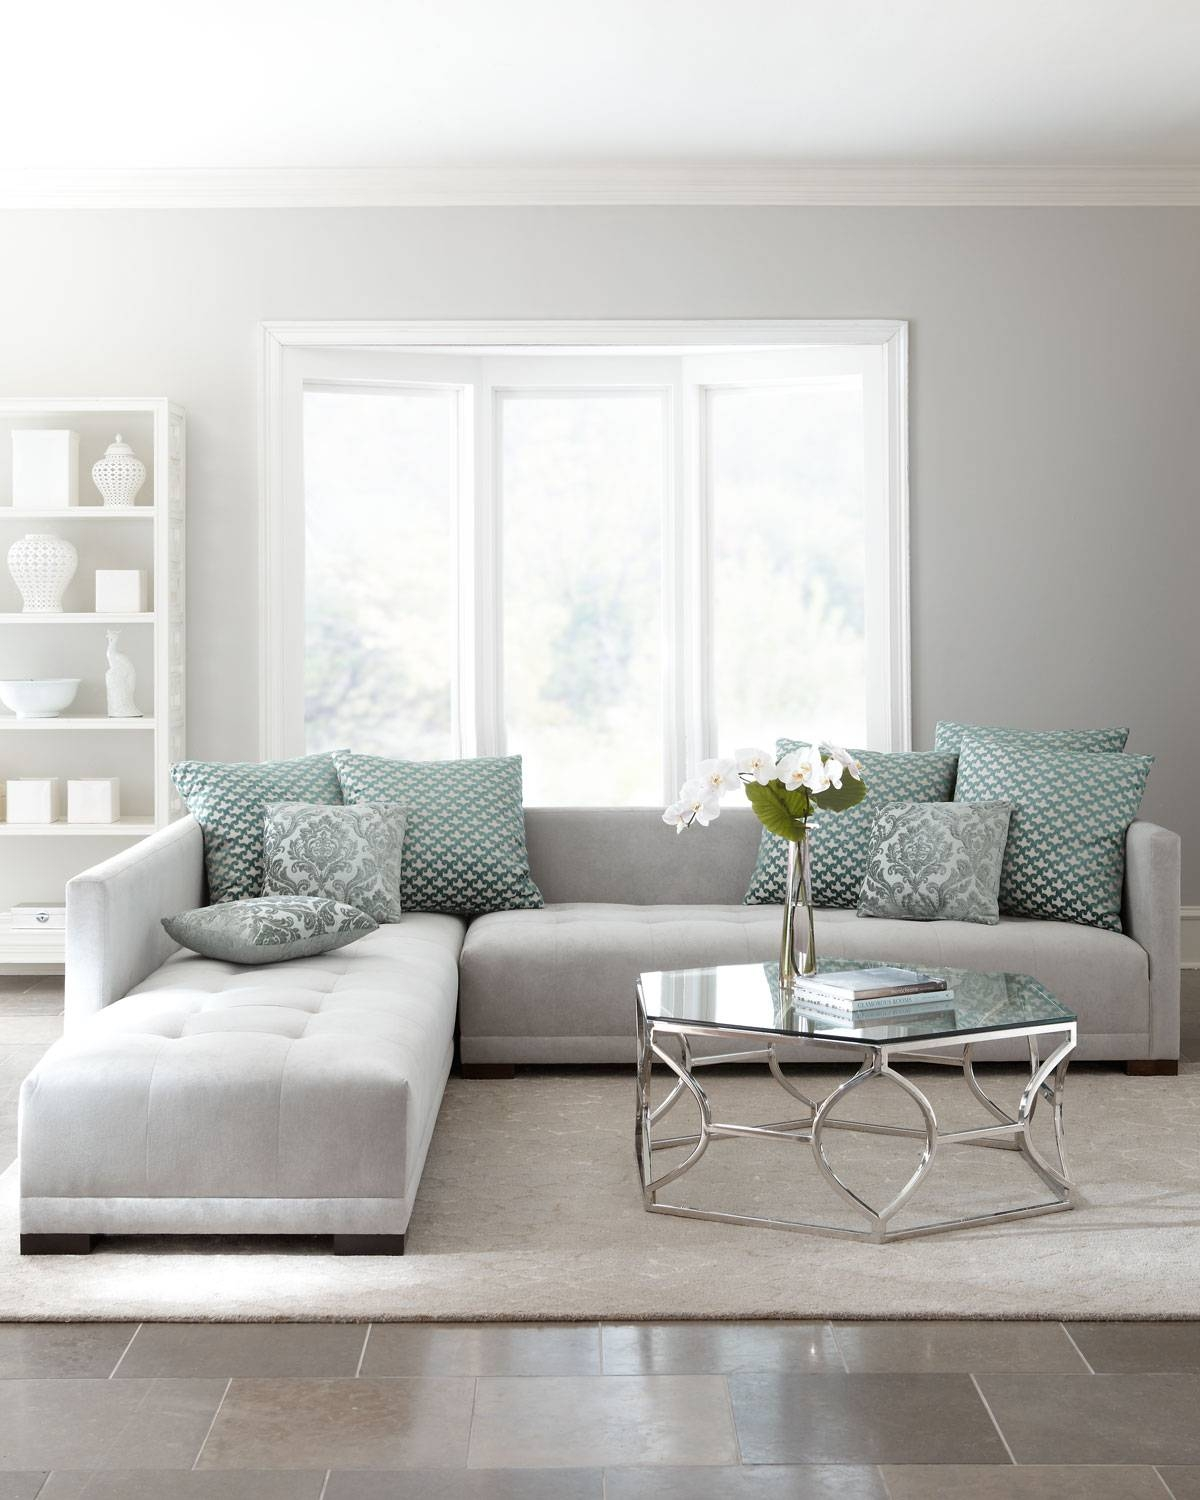 Sofa: Small Leather Sectional | West Elm Sectional | Tufted with regard to West Elm Sectional Sofa (Image 26 of 30)